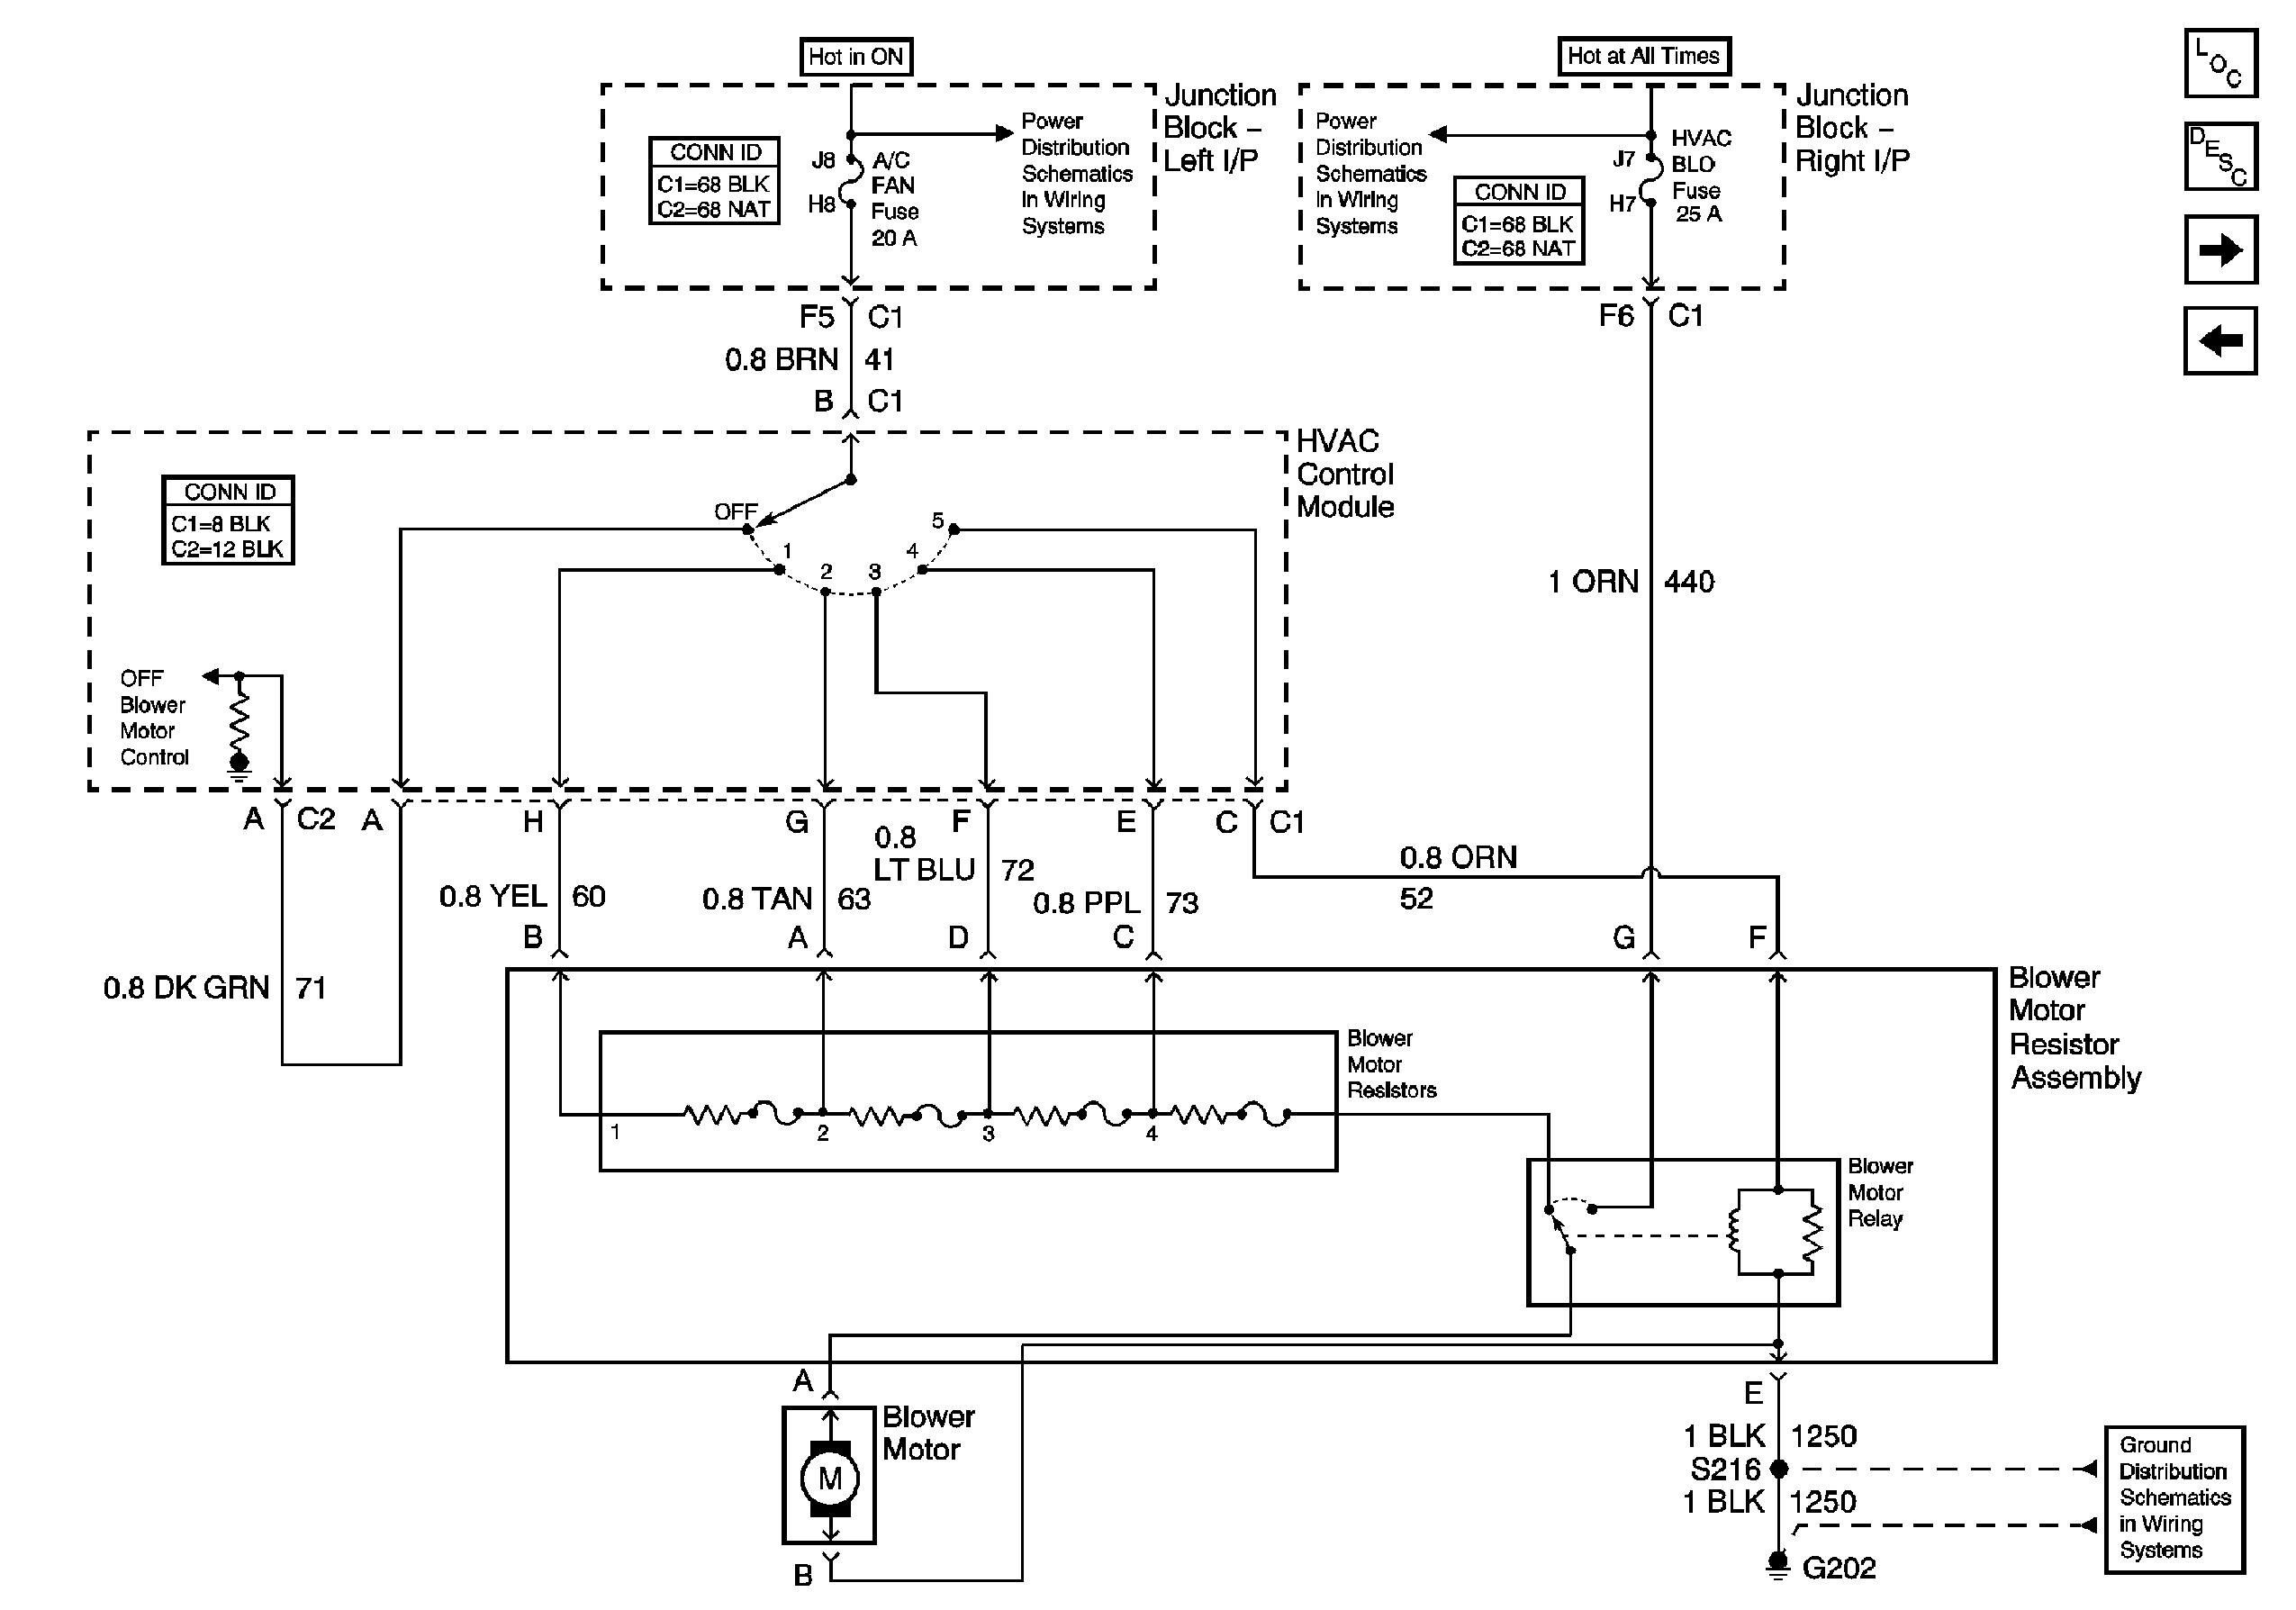 small resolution of new 2004 dodge ram 1500 ignition wiring diagram diagram diagramsample diagramtemplate wiringdiagram